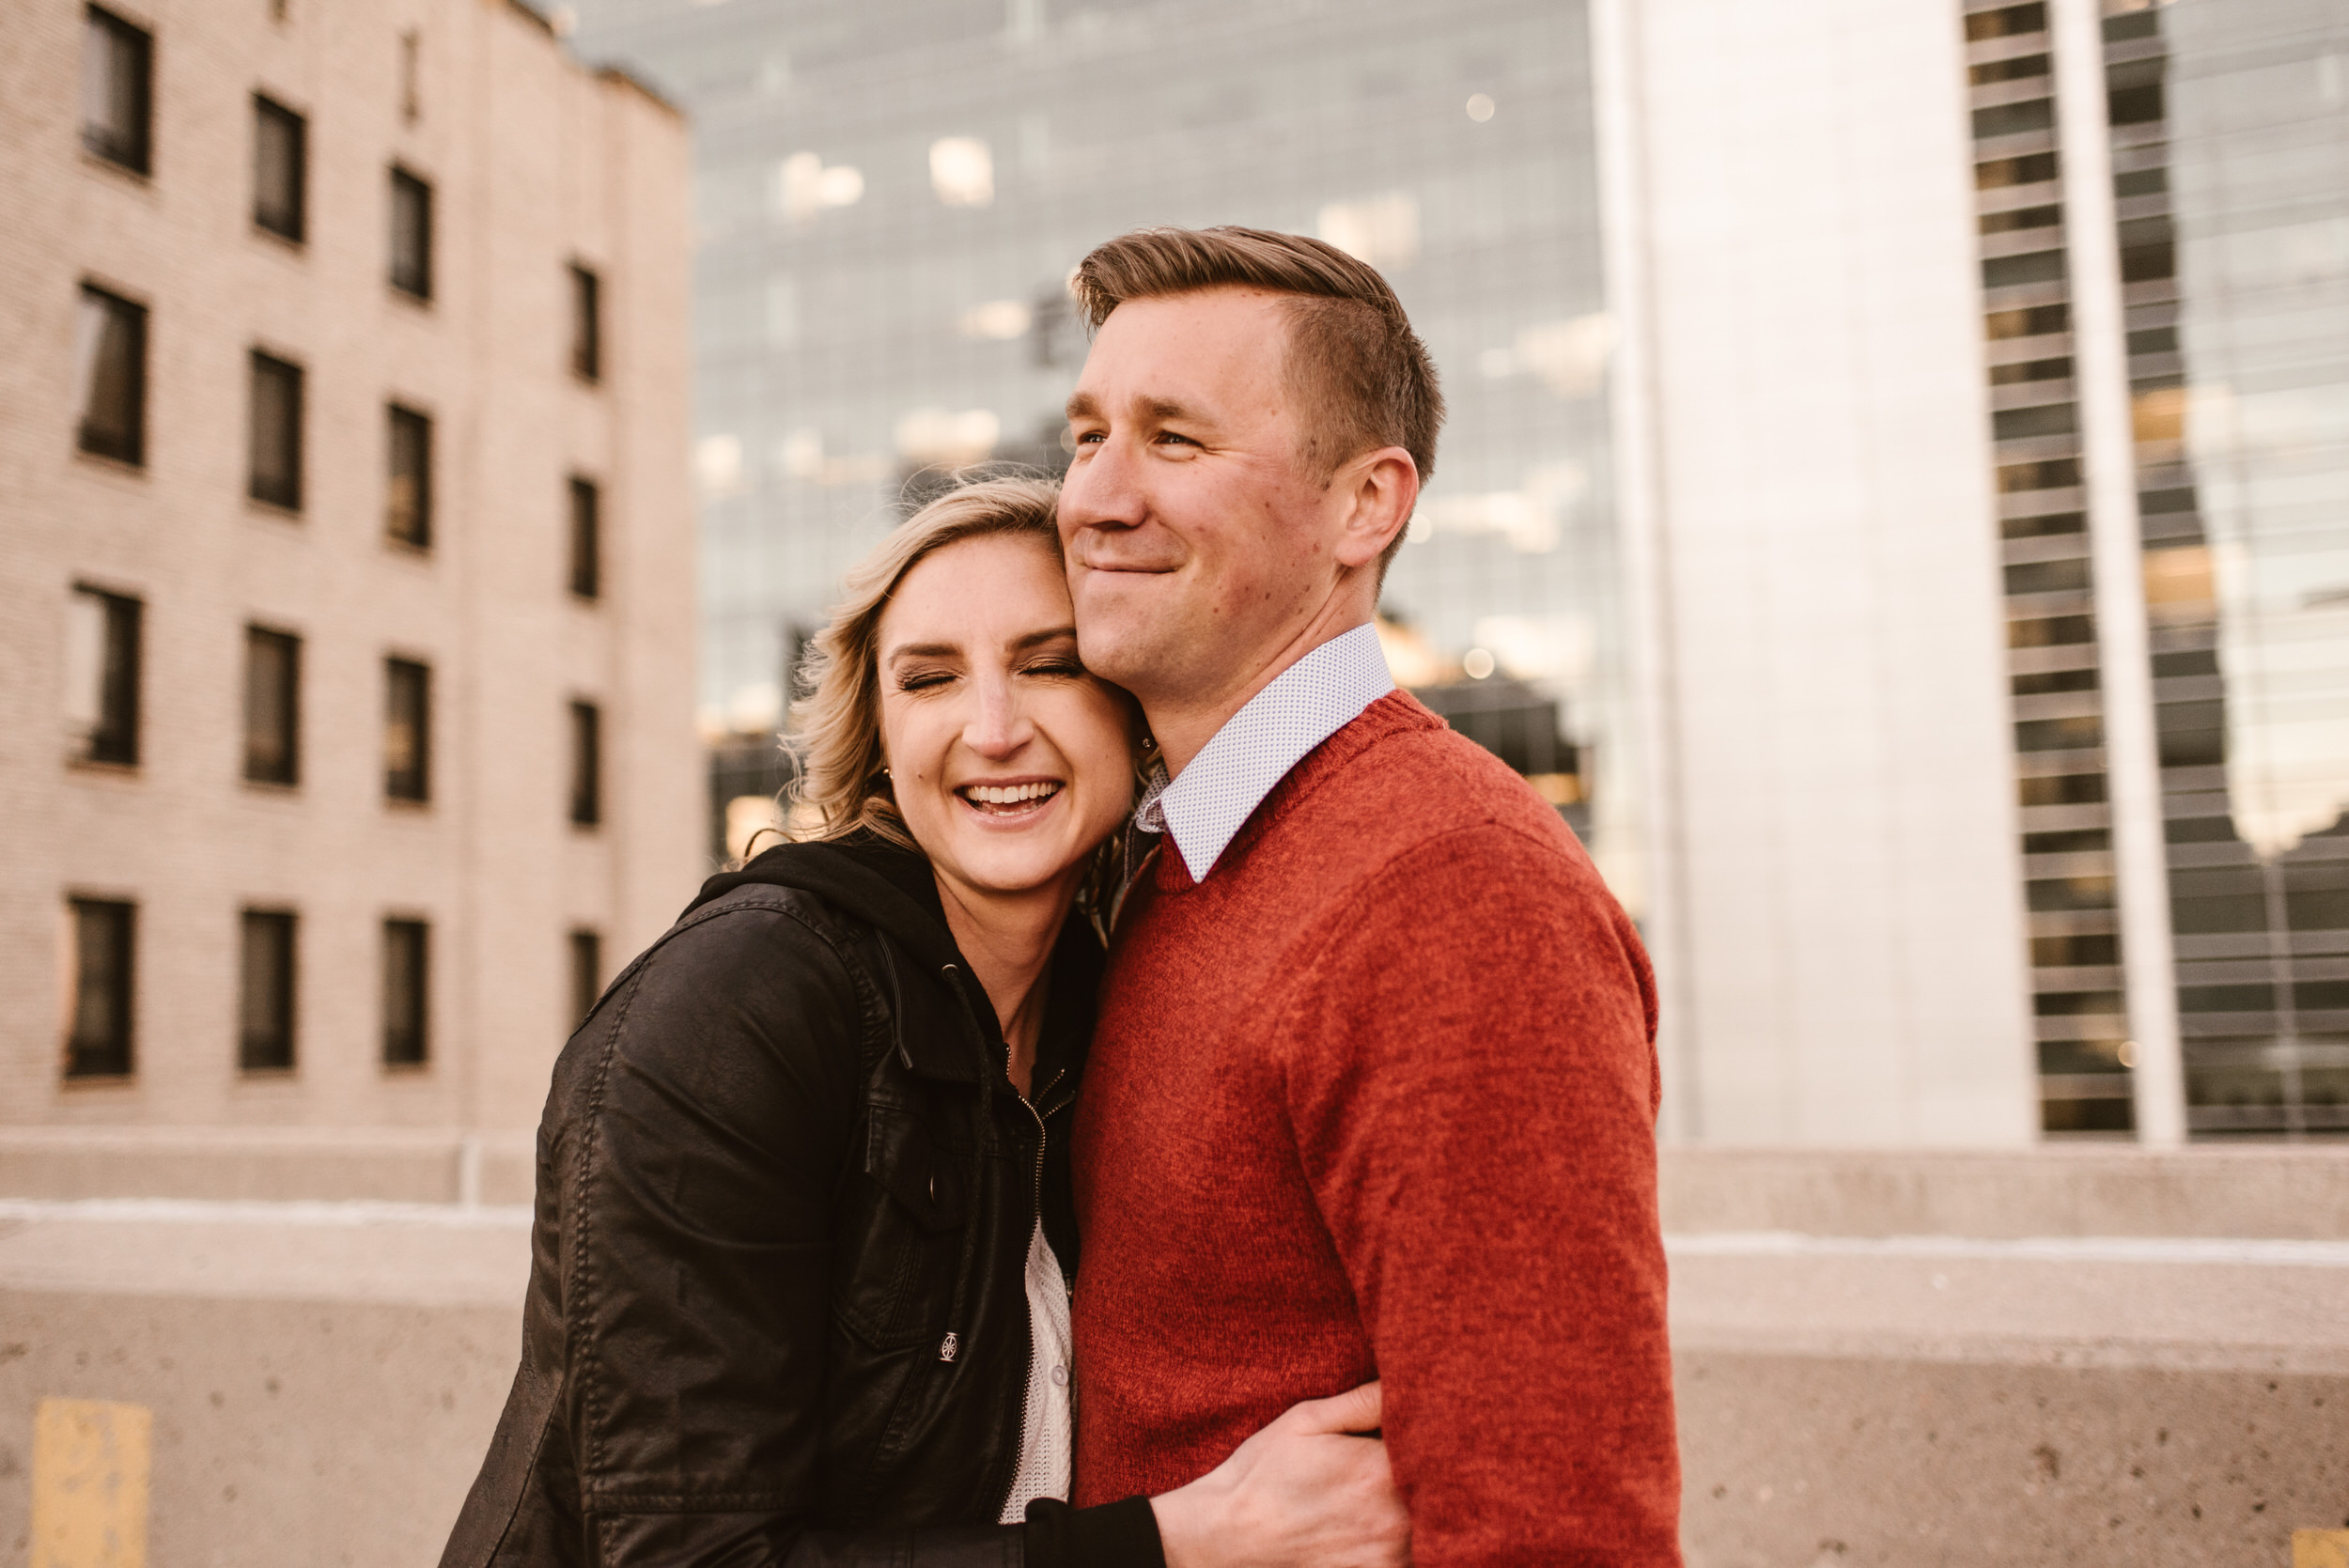 Gene Leahy Mall Omaha Engagement Session Kaylie Sirek Photography 31.jpg